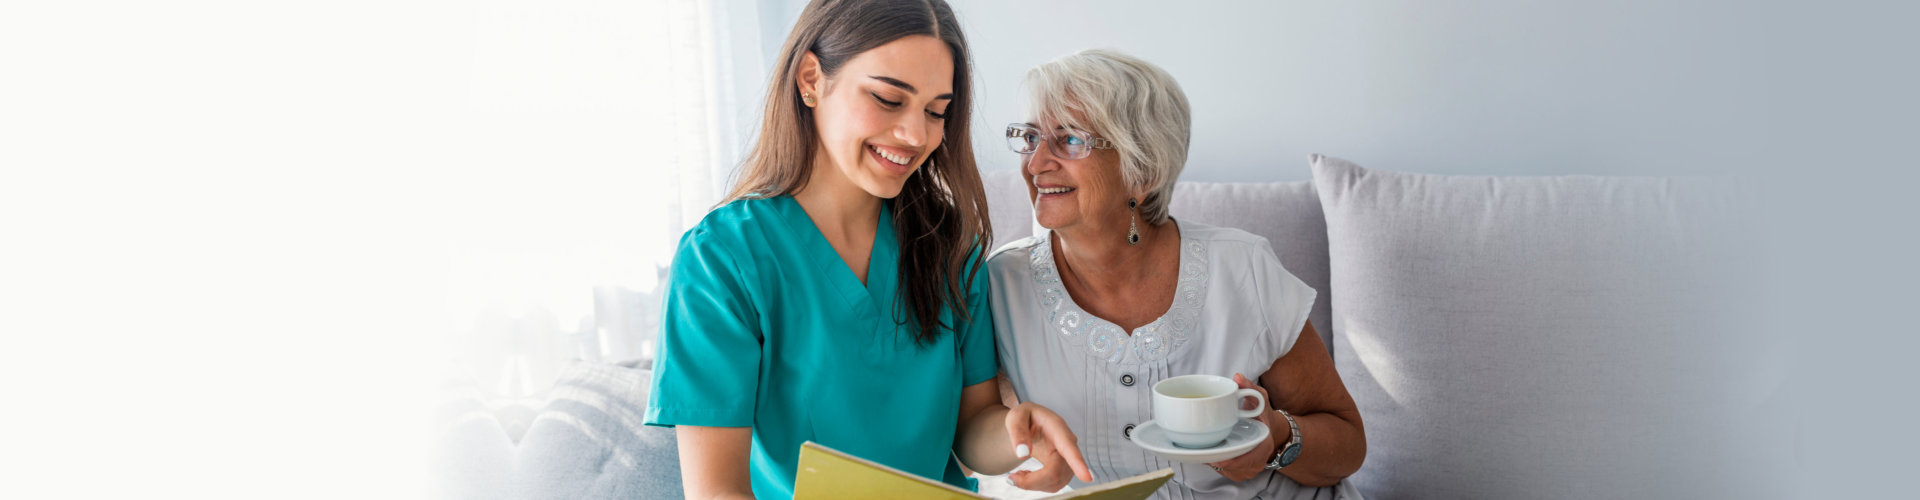 careviger reading to her senior patient